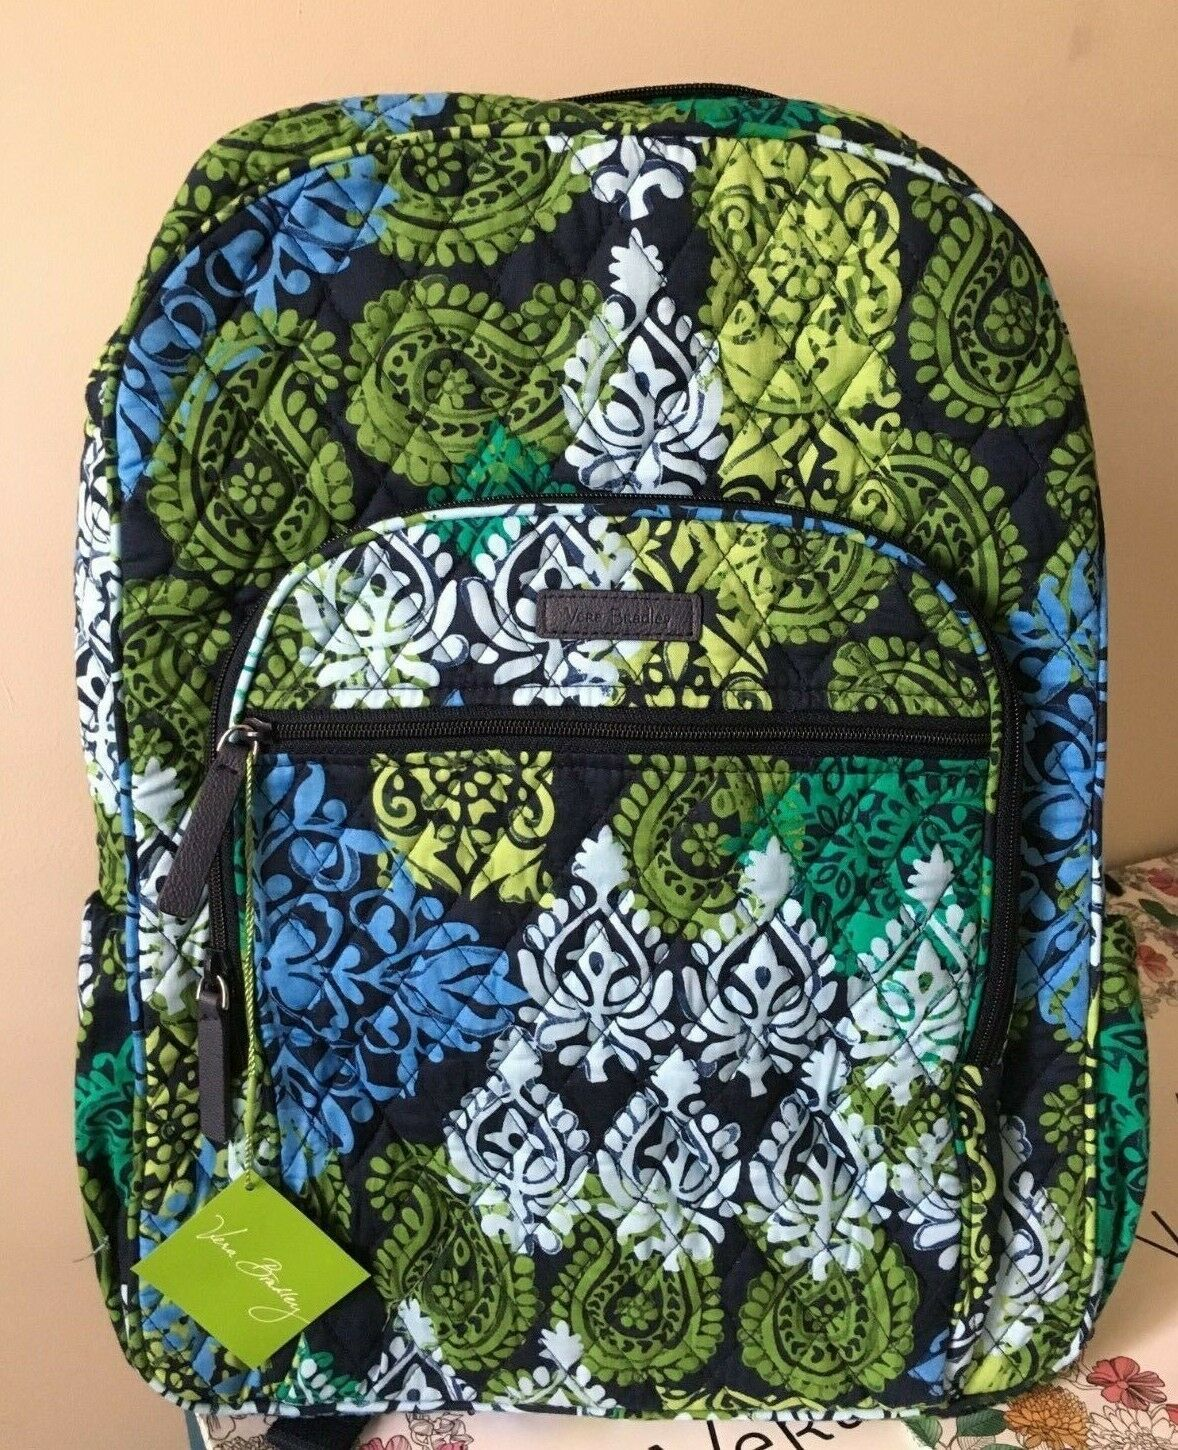 f1268eff24ed 57. 57. Previous. NWT VERA BRADLEY CAMPUS BACKPACK SCHOOL COLLEGE BOOK BAG   109 in CARIBBEAN SEA